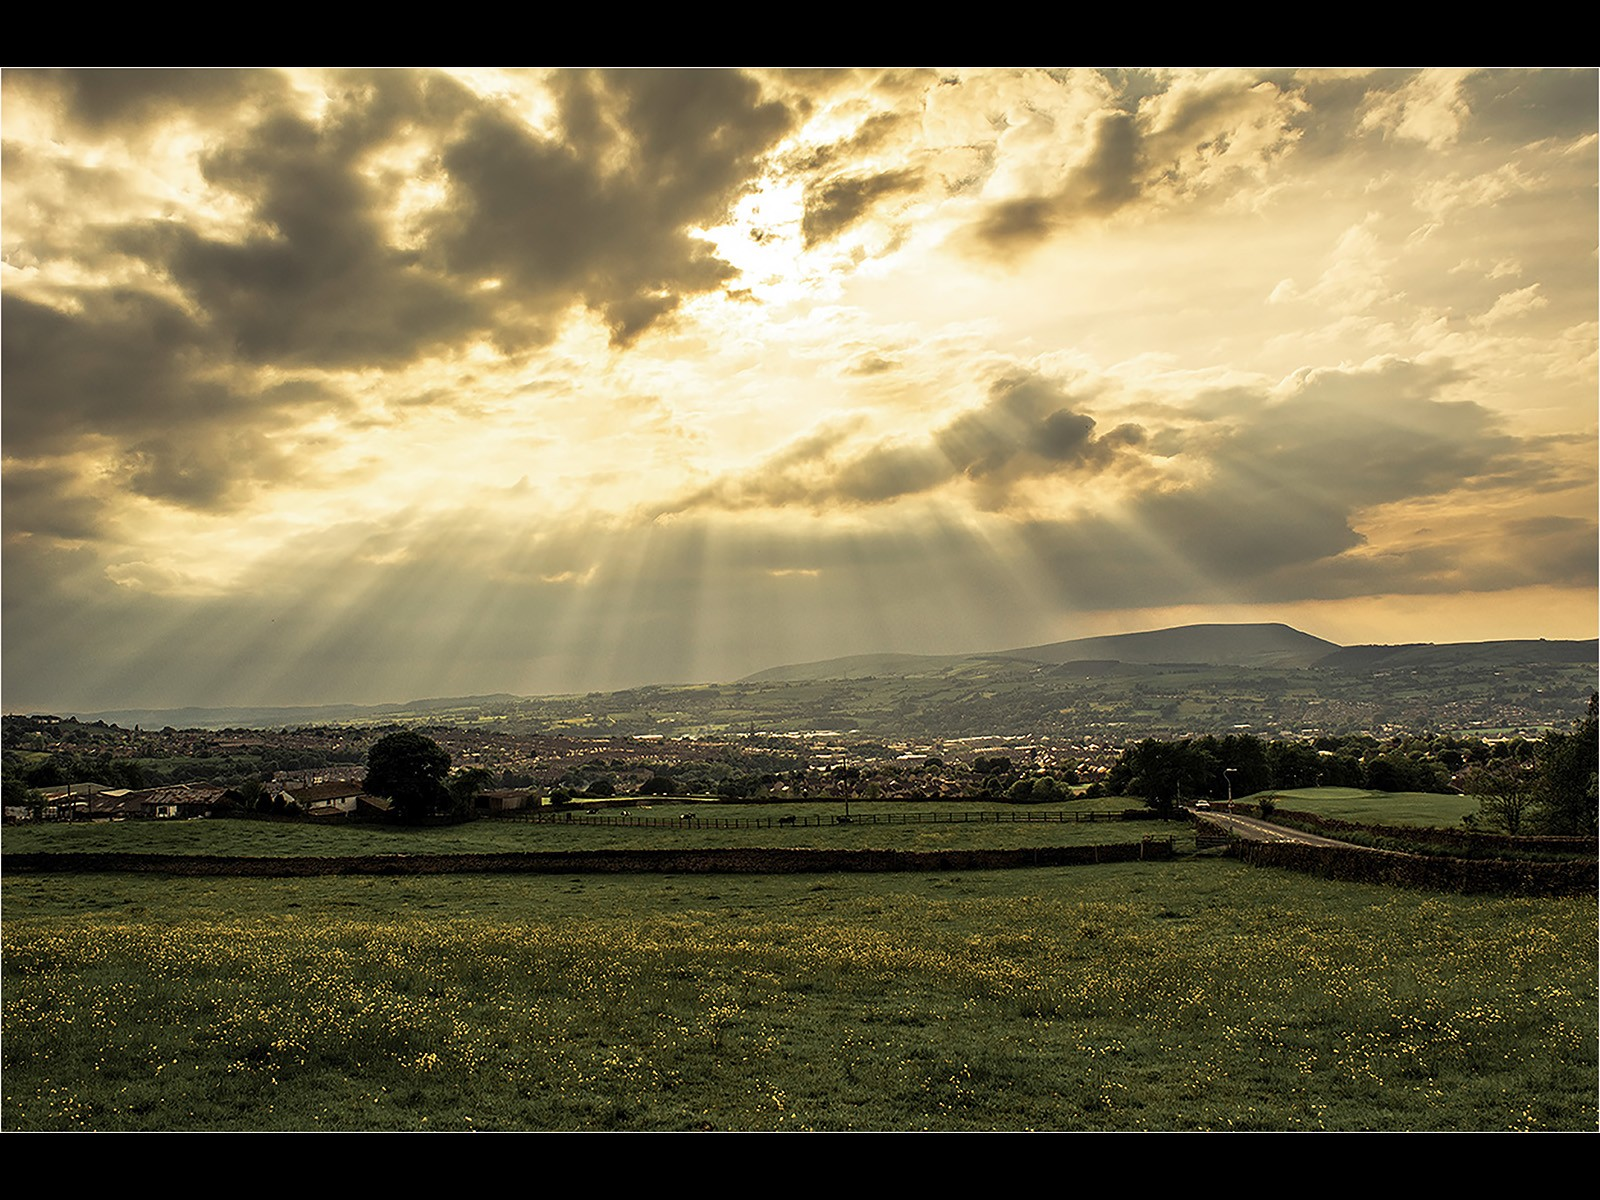 Crepuscular rays in Pendle